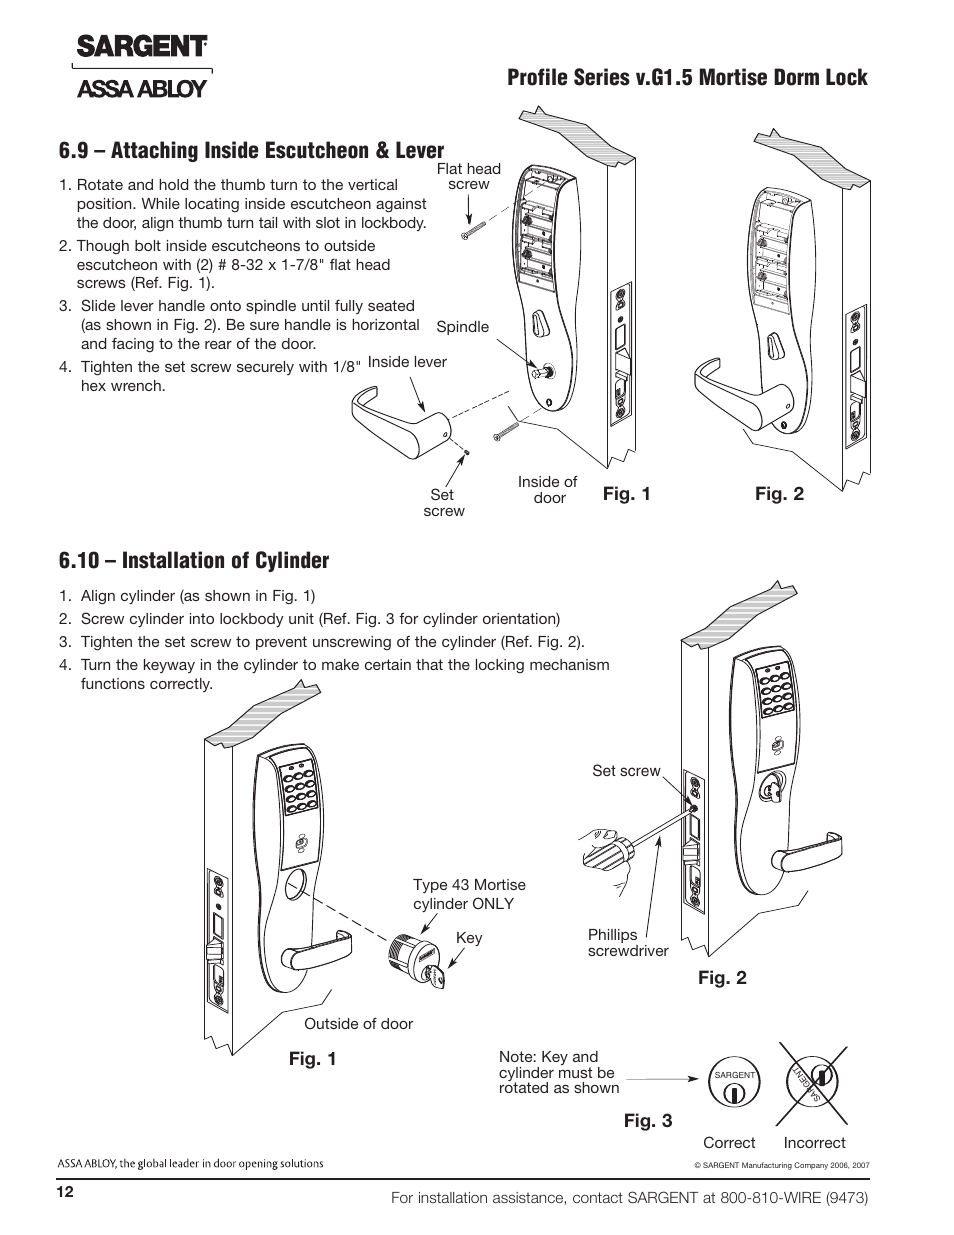 Sargent Cylinders Diagrams Trusted Wiring By Locks 10 Installation Of Cylinder Fig 1 2 3 Grade